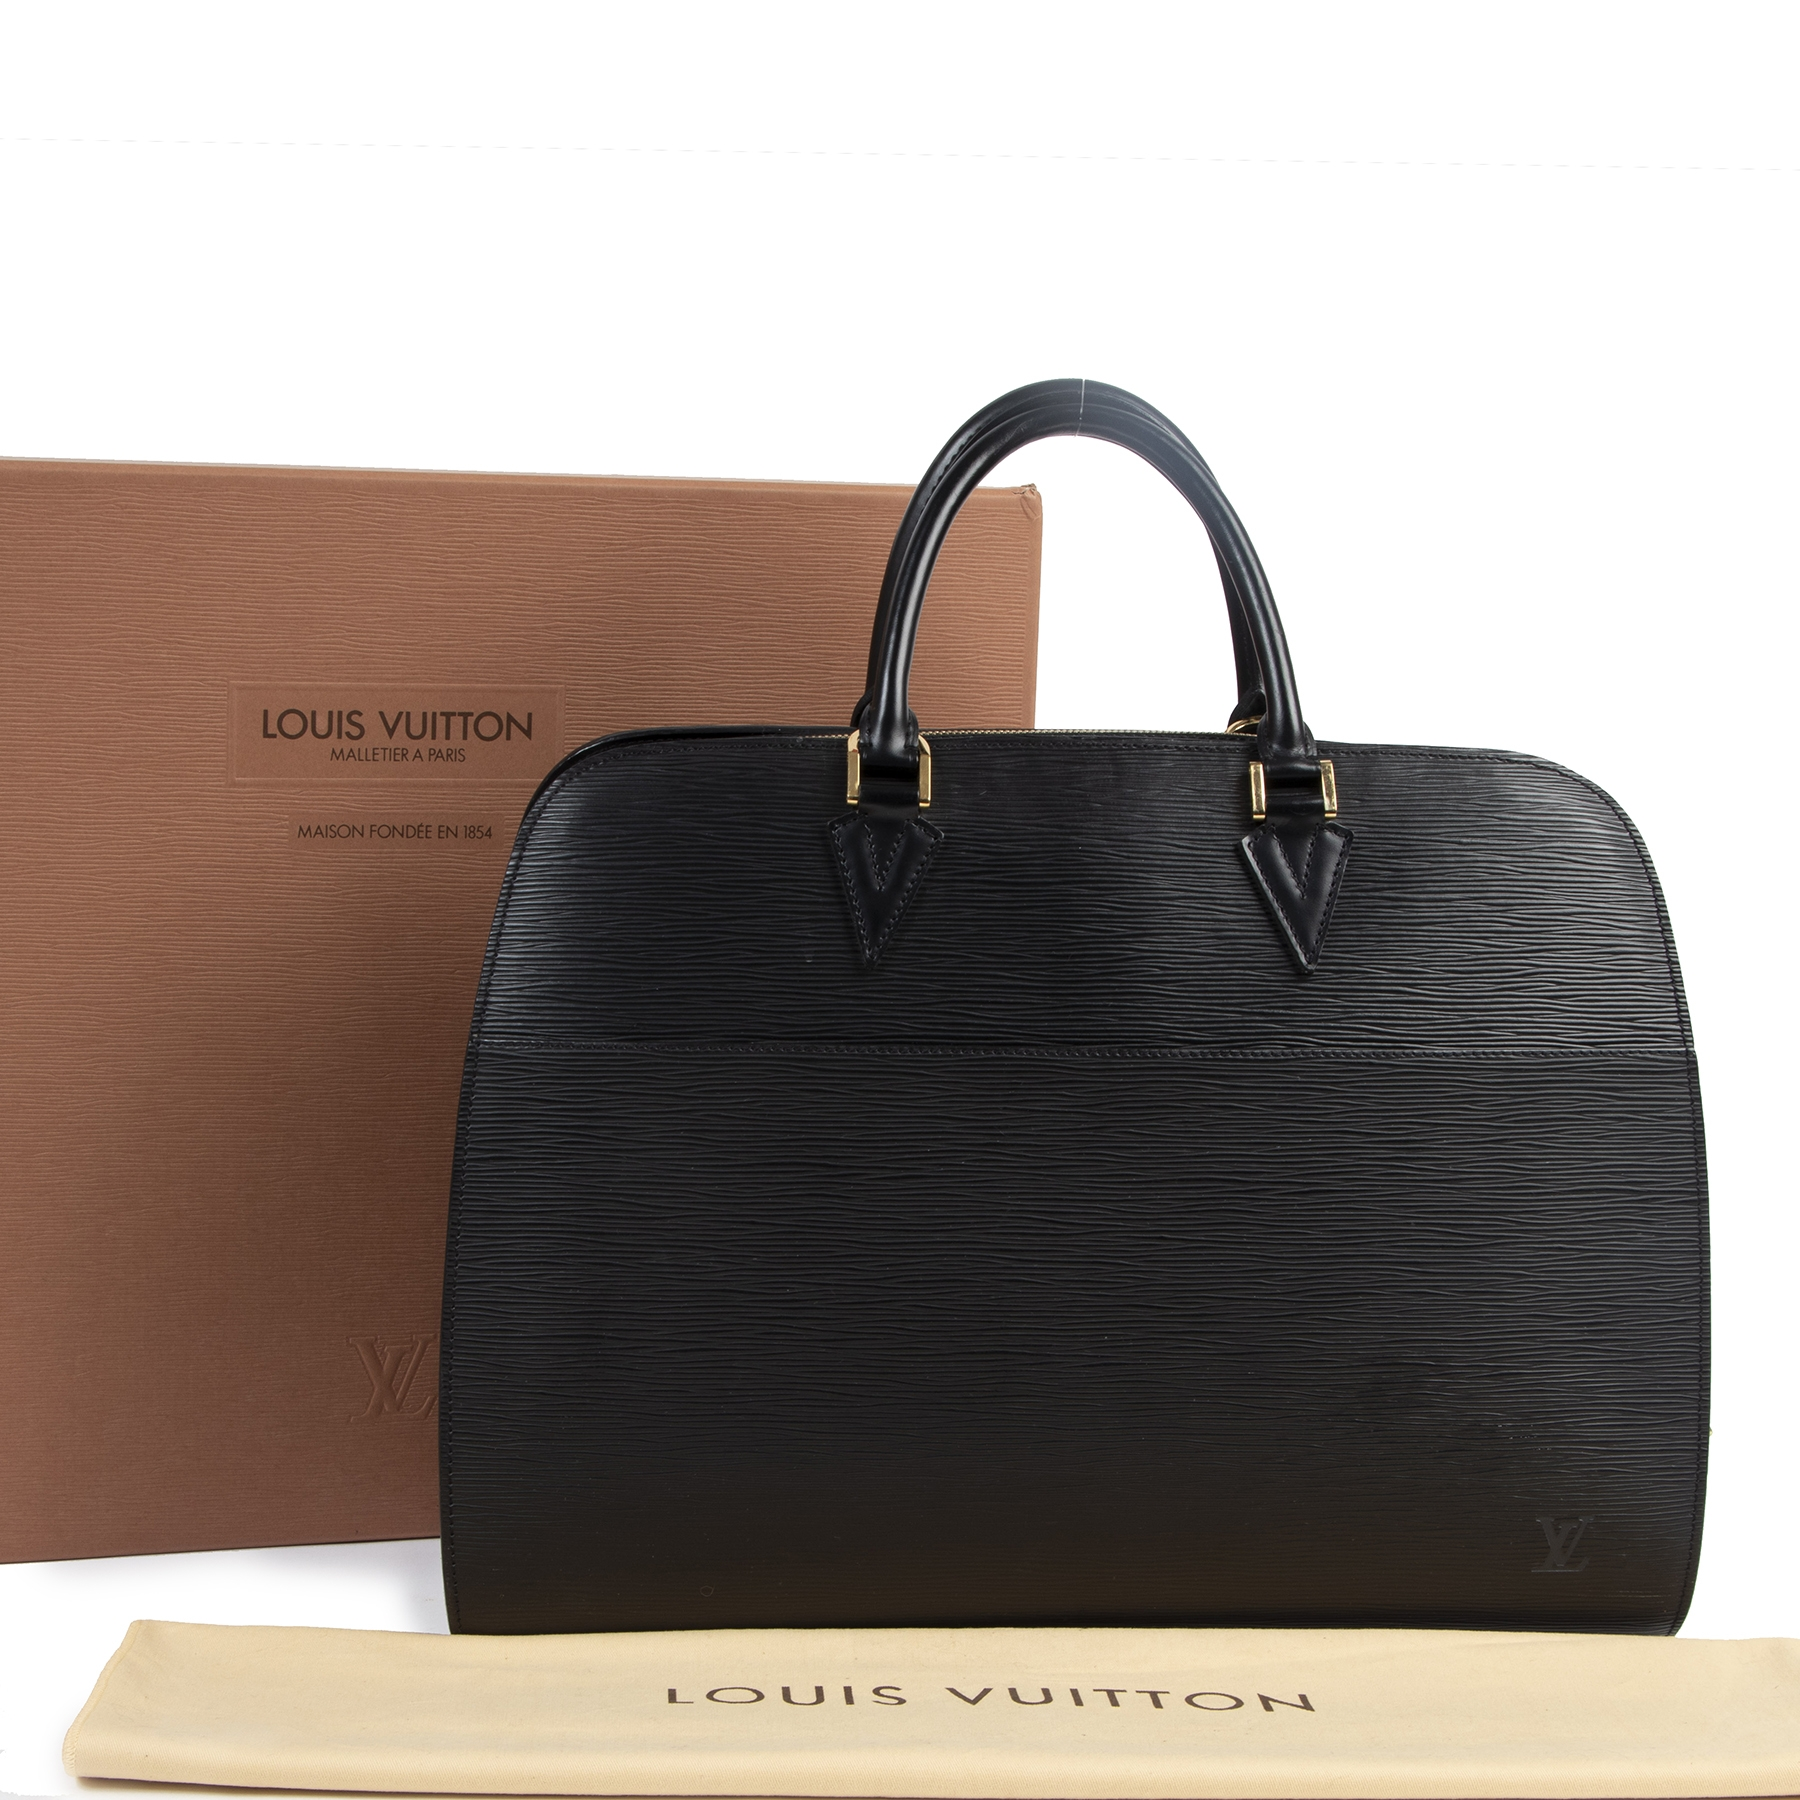 Authentieke tweedehands vintage Louis Vuitton Sorbonne Epi Briefcase Black koop online webshop LabelLOV